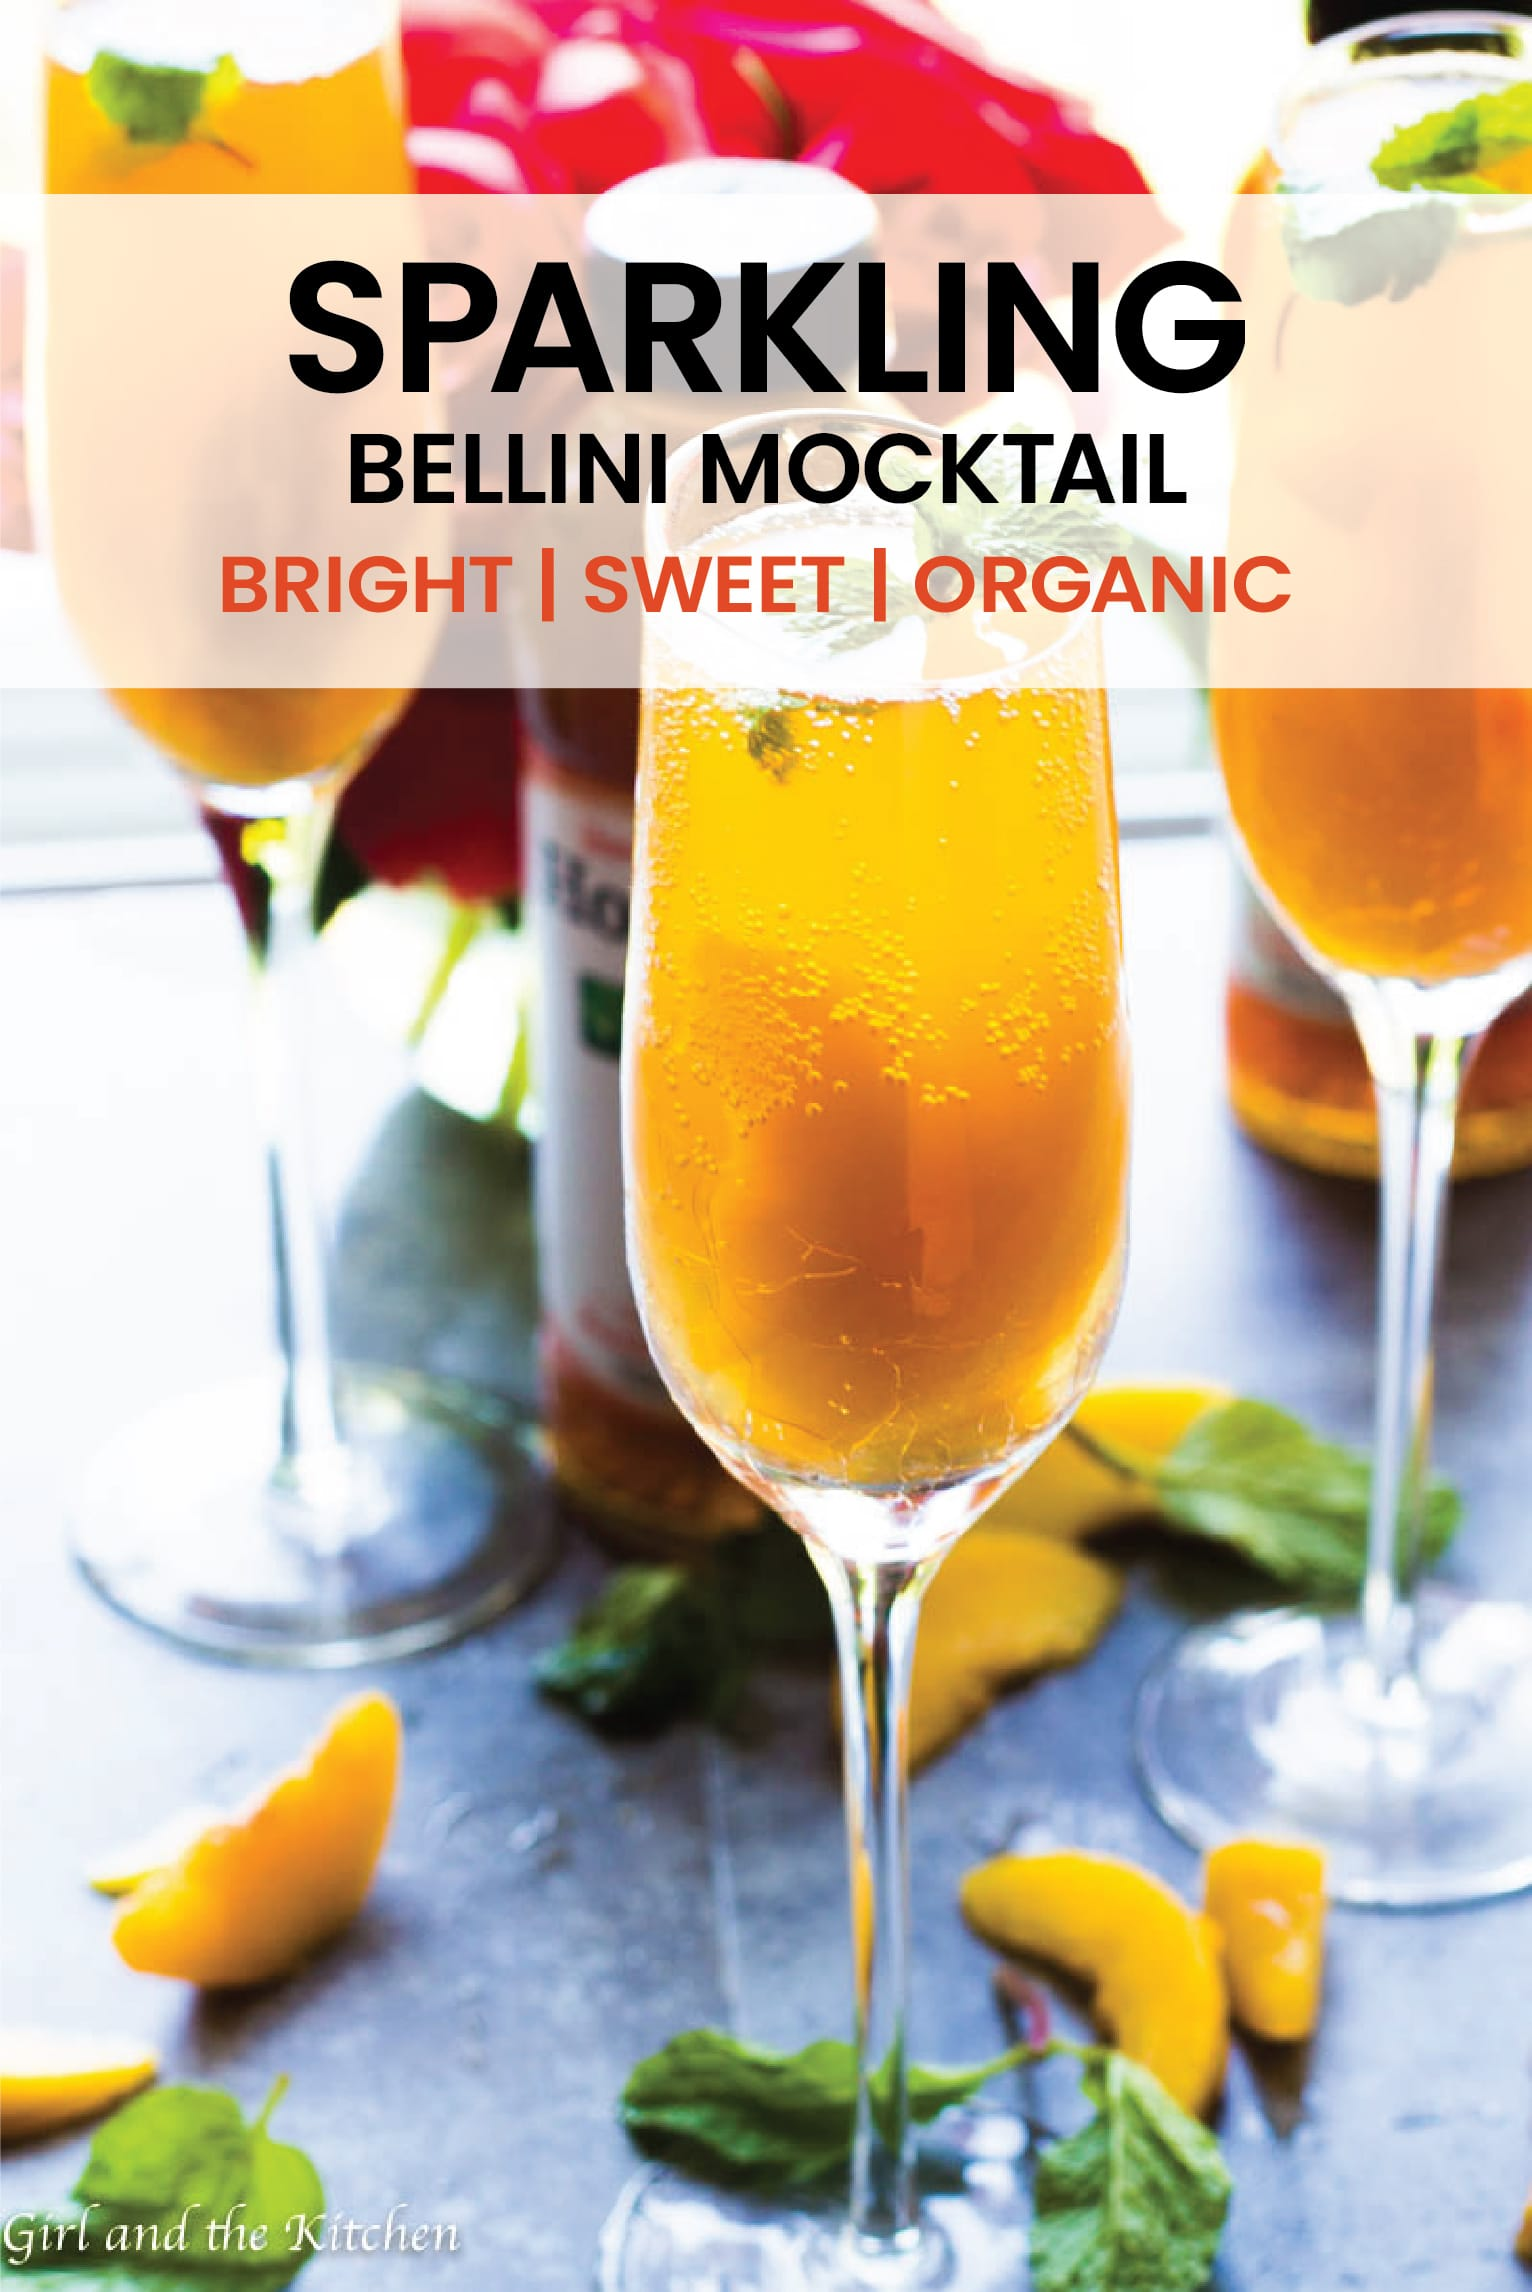 This delicious Sparkling Bellini Mocktail is not just for adults!  Full of bright peach flavors from the deliciousness of Organic Honest® Tea and sweet peaches this mocktail will please everyone at your next party! #mocktail # Bright #organic